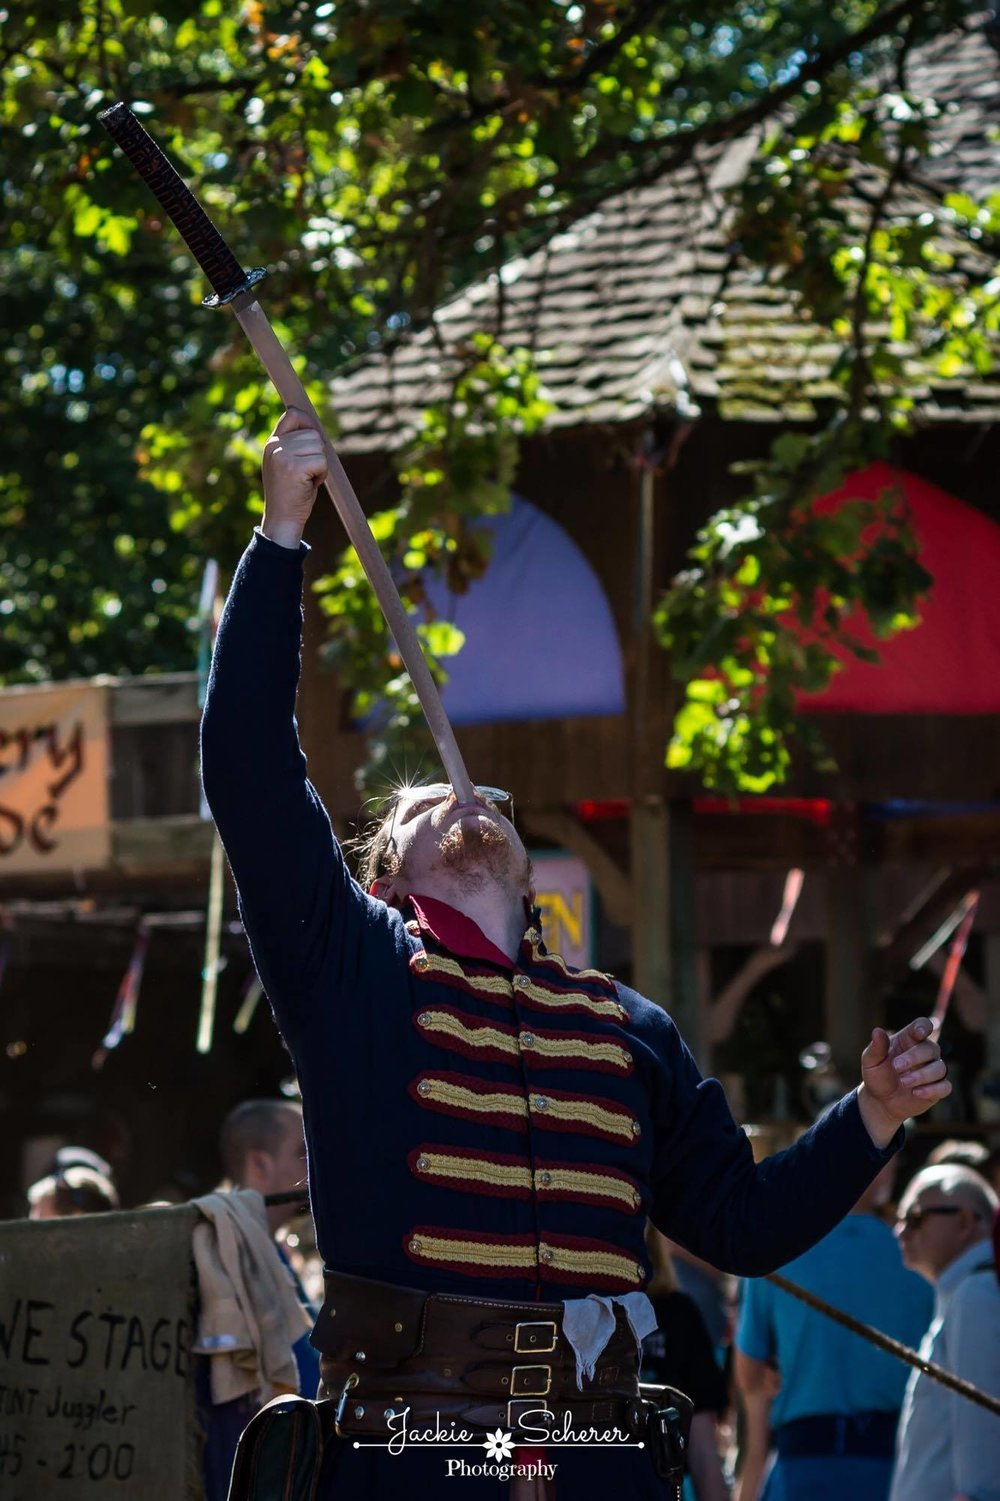 Swallowing a katana at the Minnesota Renaissance Festival